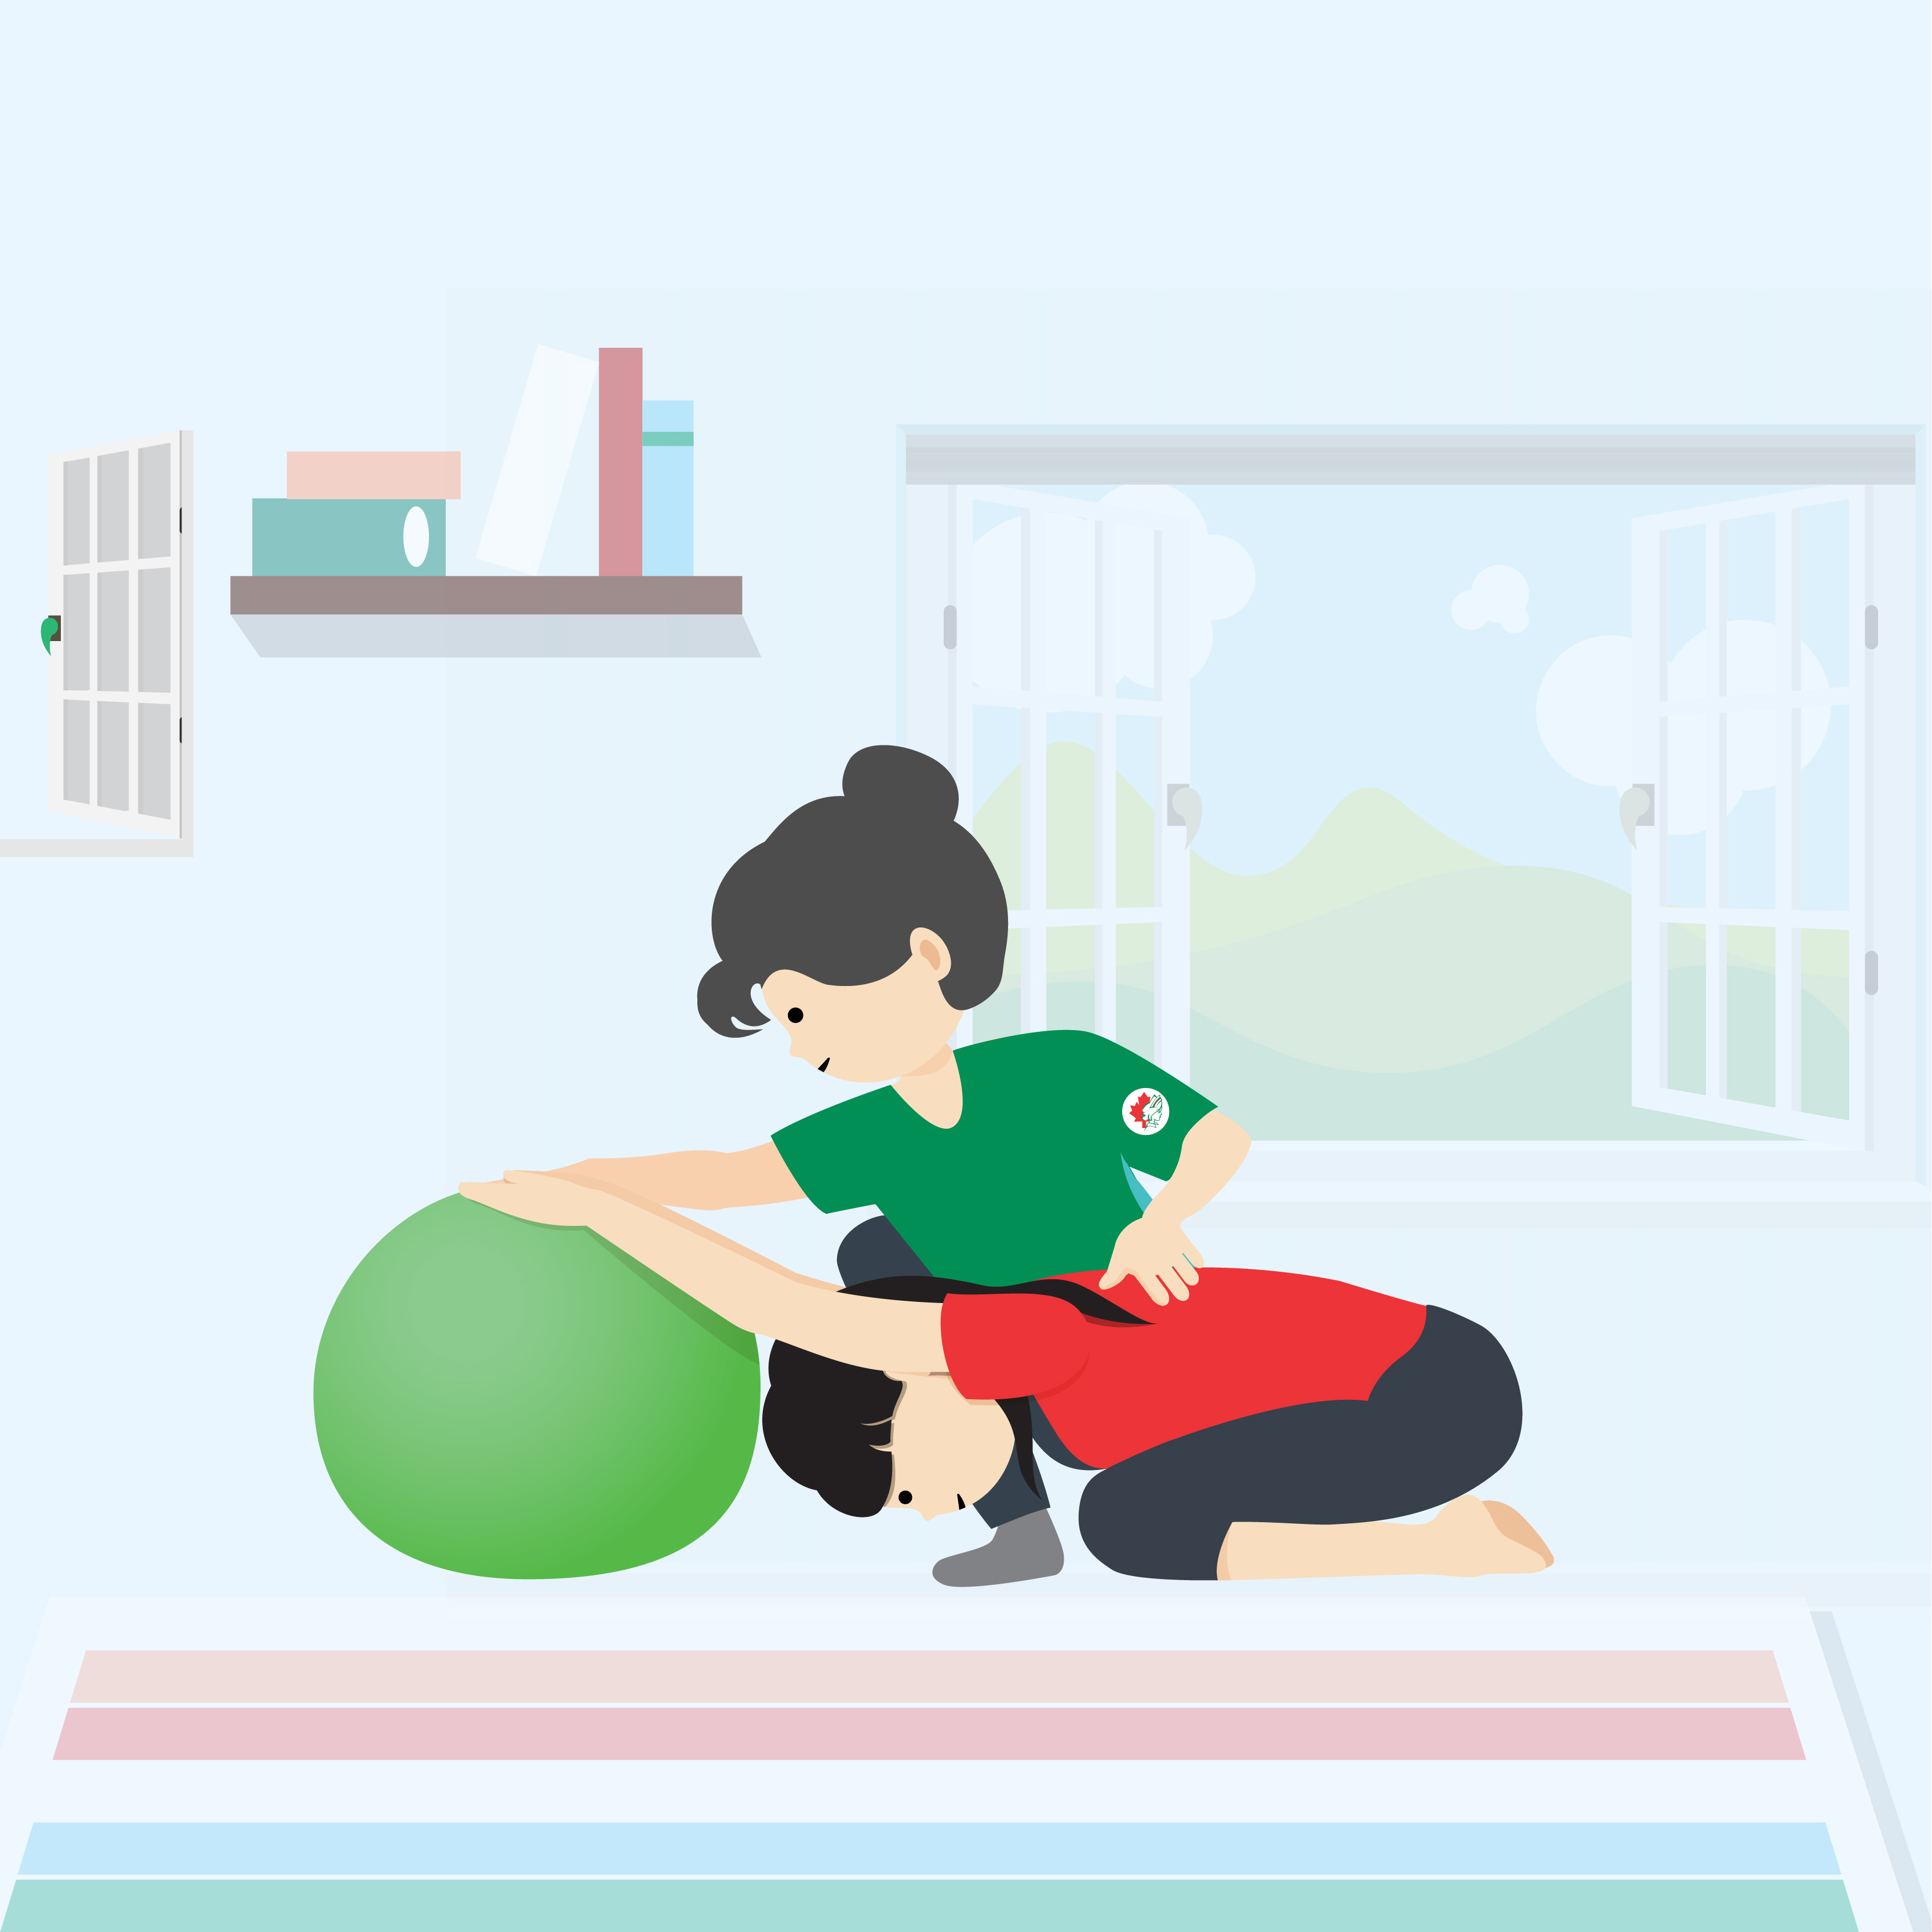 Physiotherapy Treatment for Musculoskeletal Disorders or Pains, Orthopedic Physiotherapy